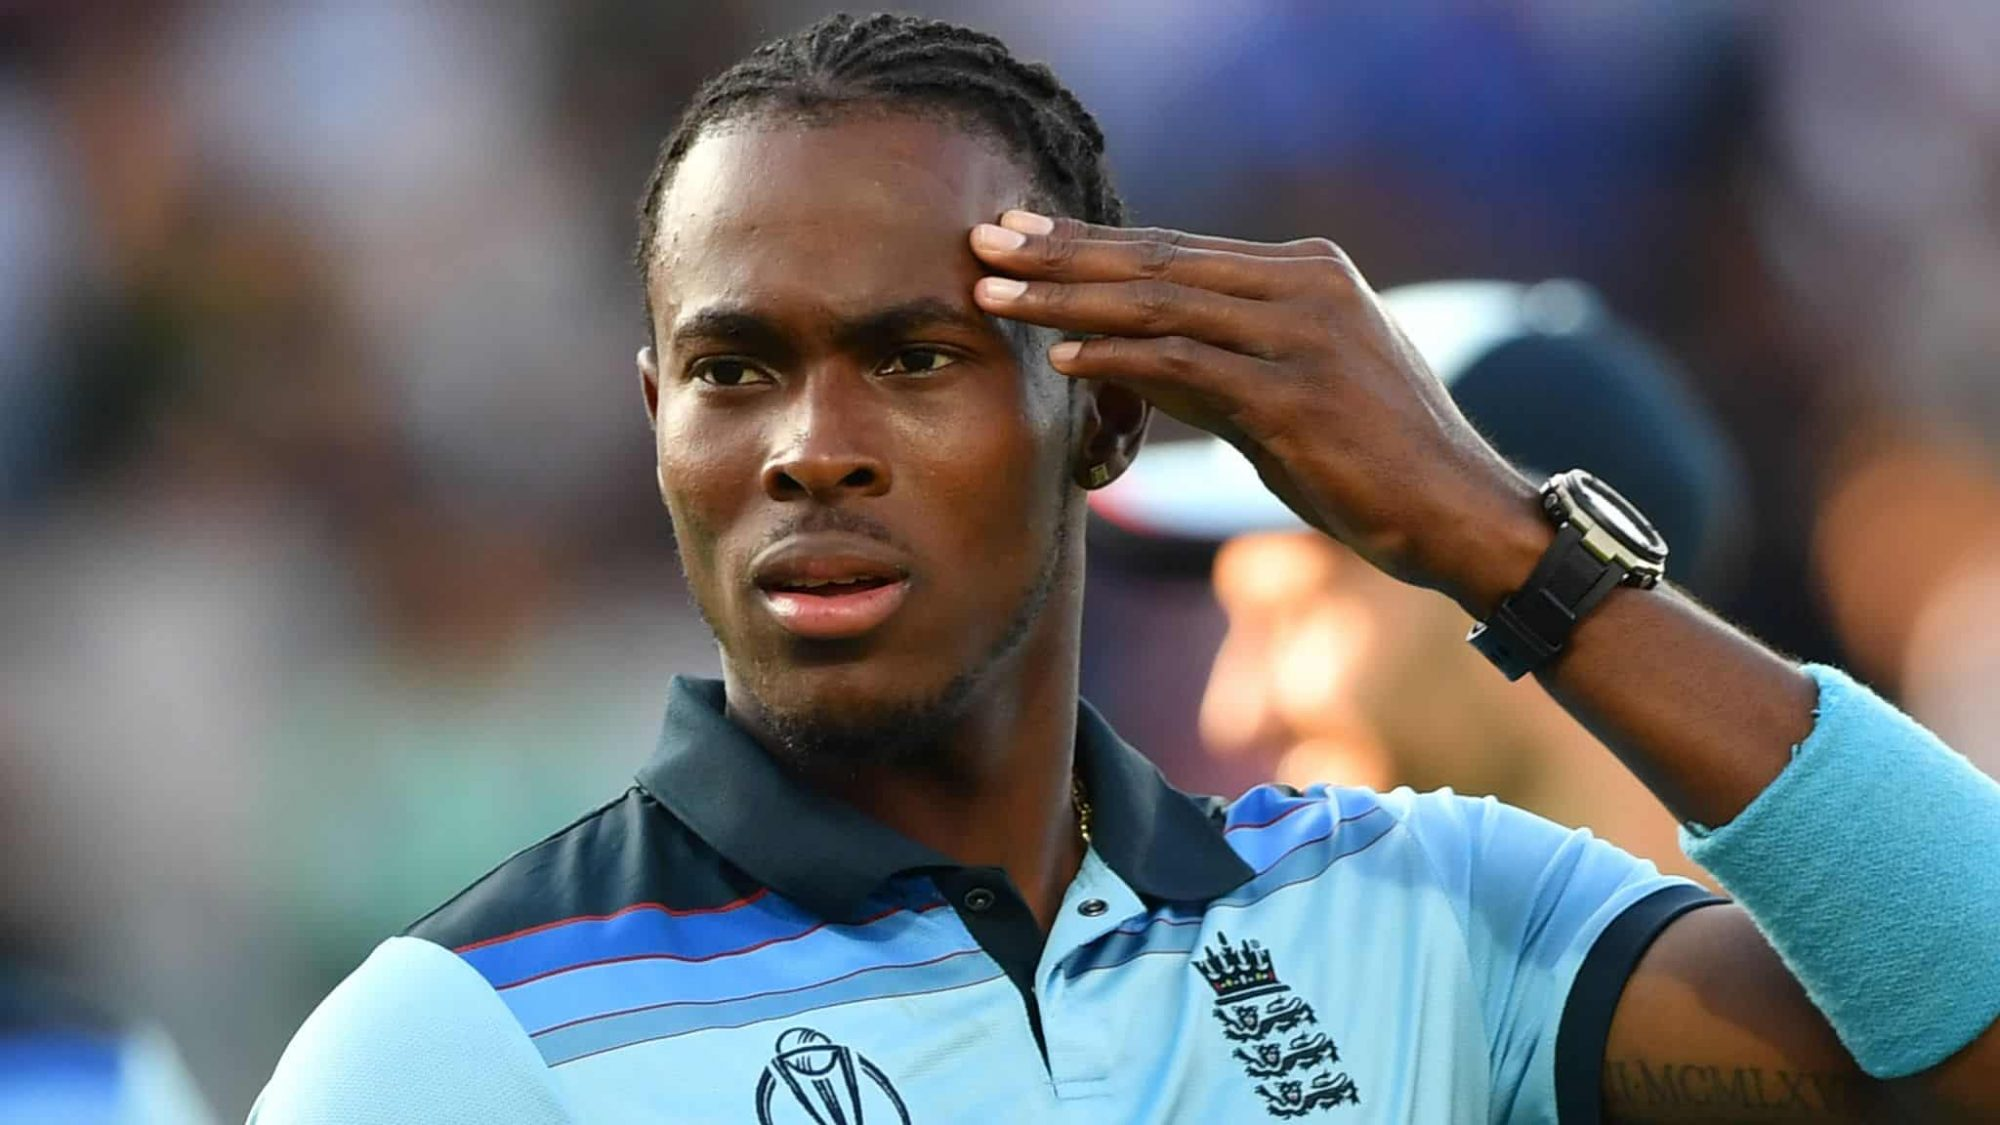 Jofra Archer May Miss Upcoming Five T20I Series Against India Due To Elbow Injury: Reports